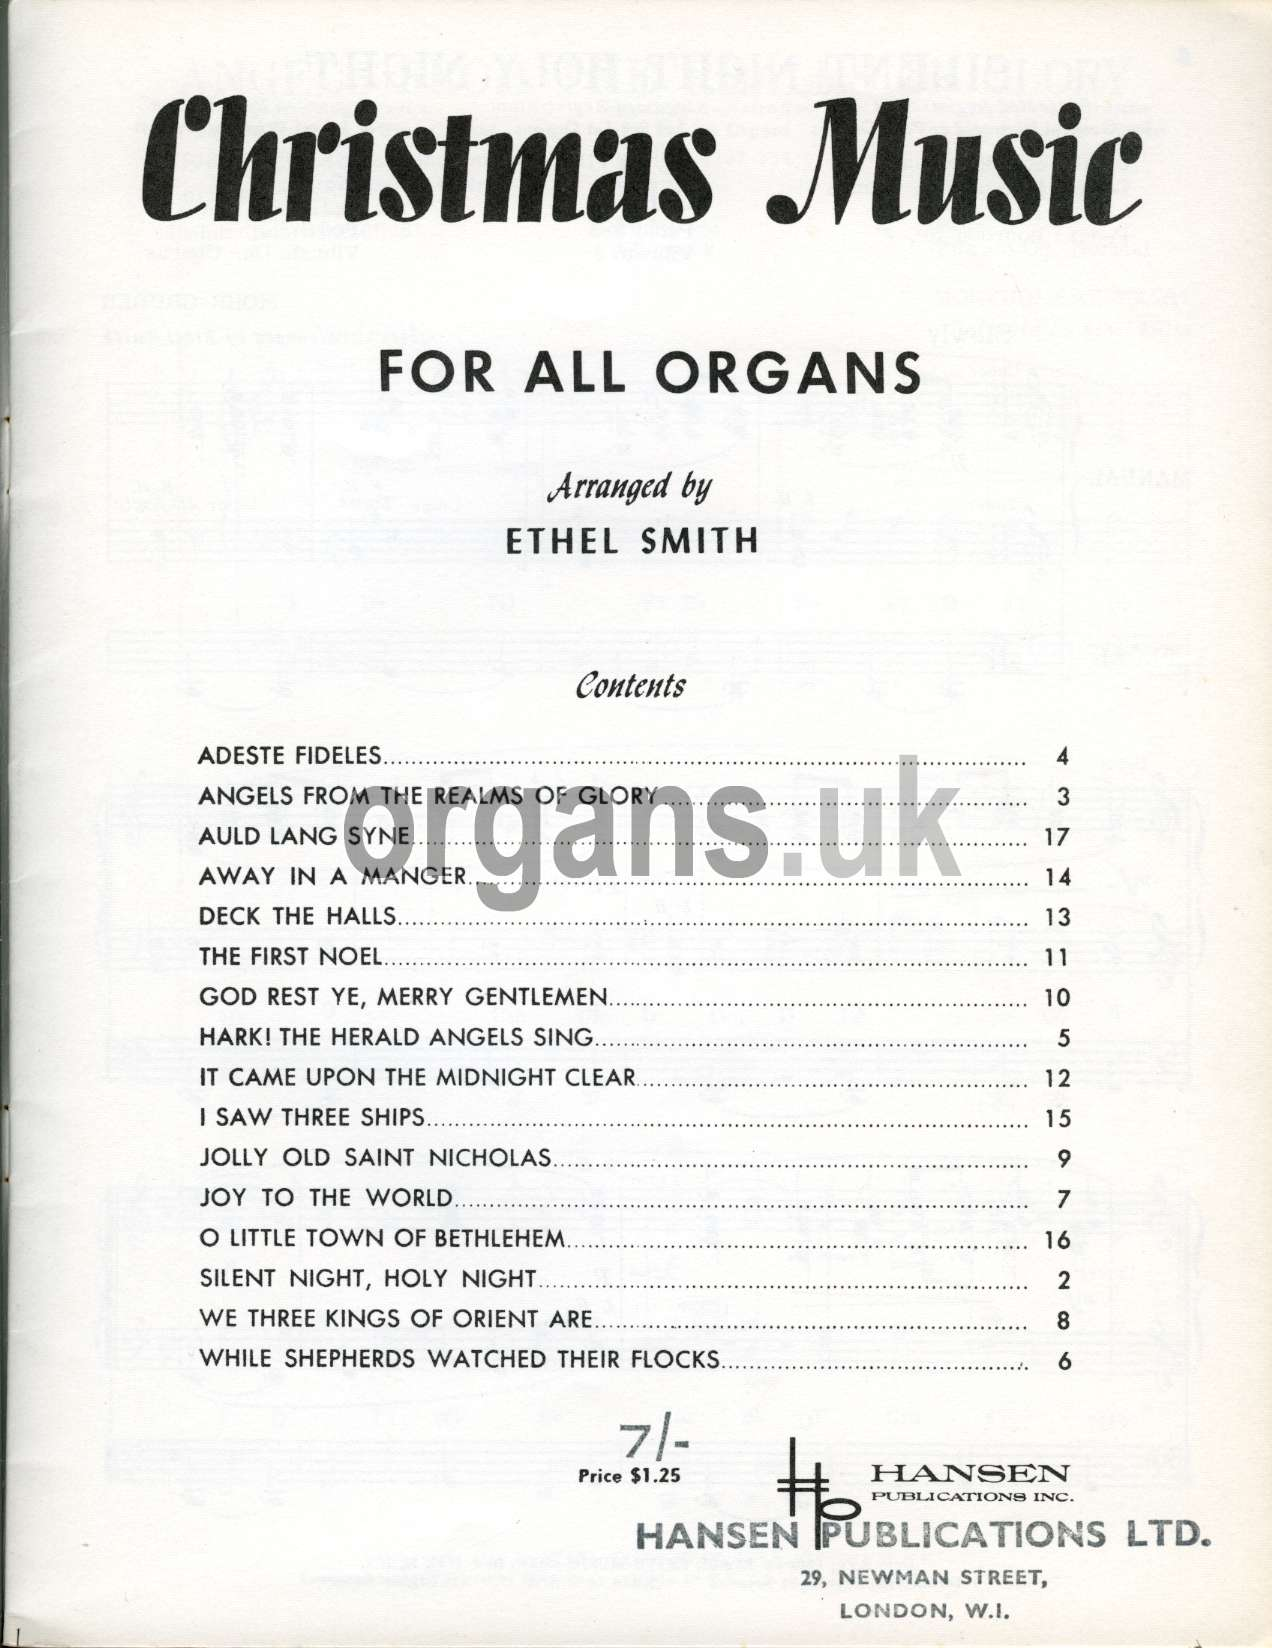 Ethel Smith's Christmas Music Book